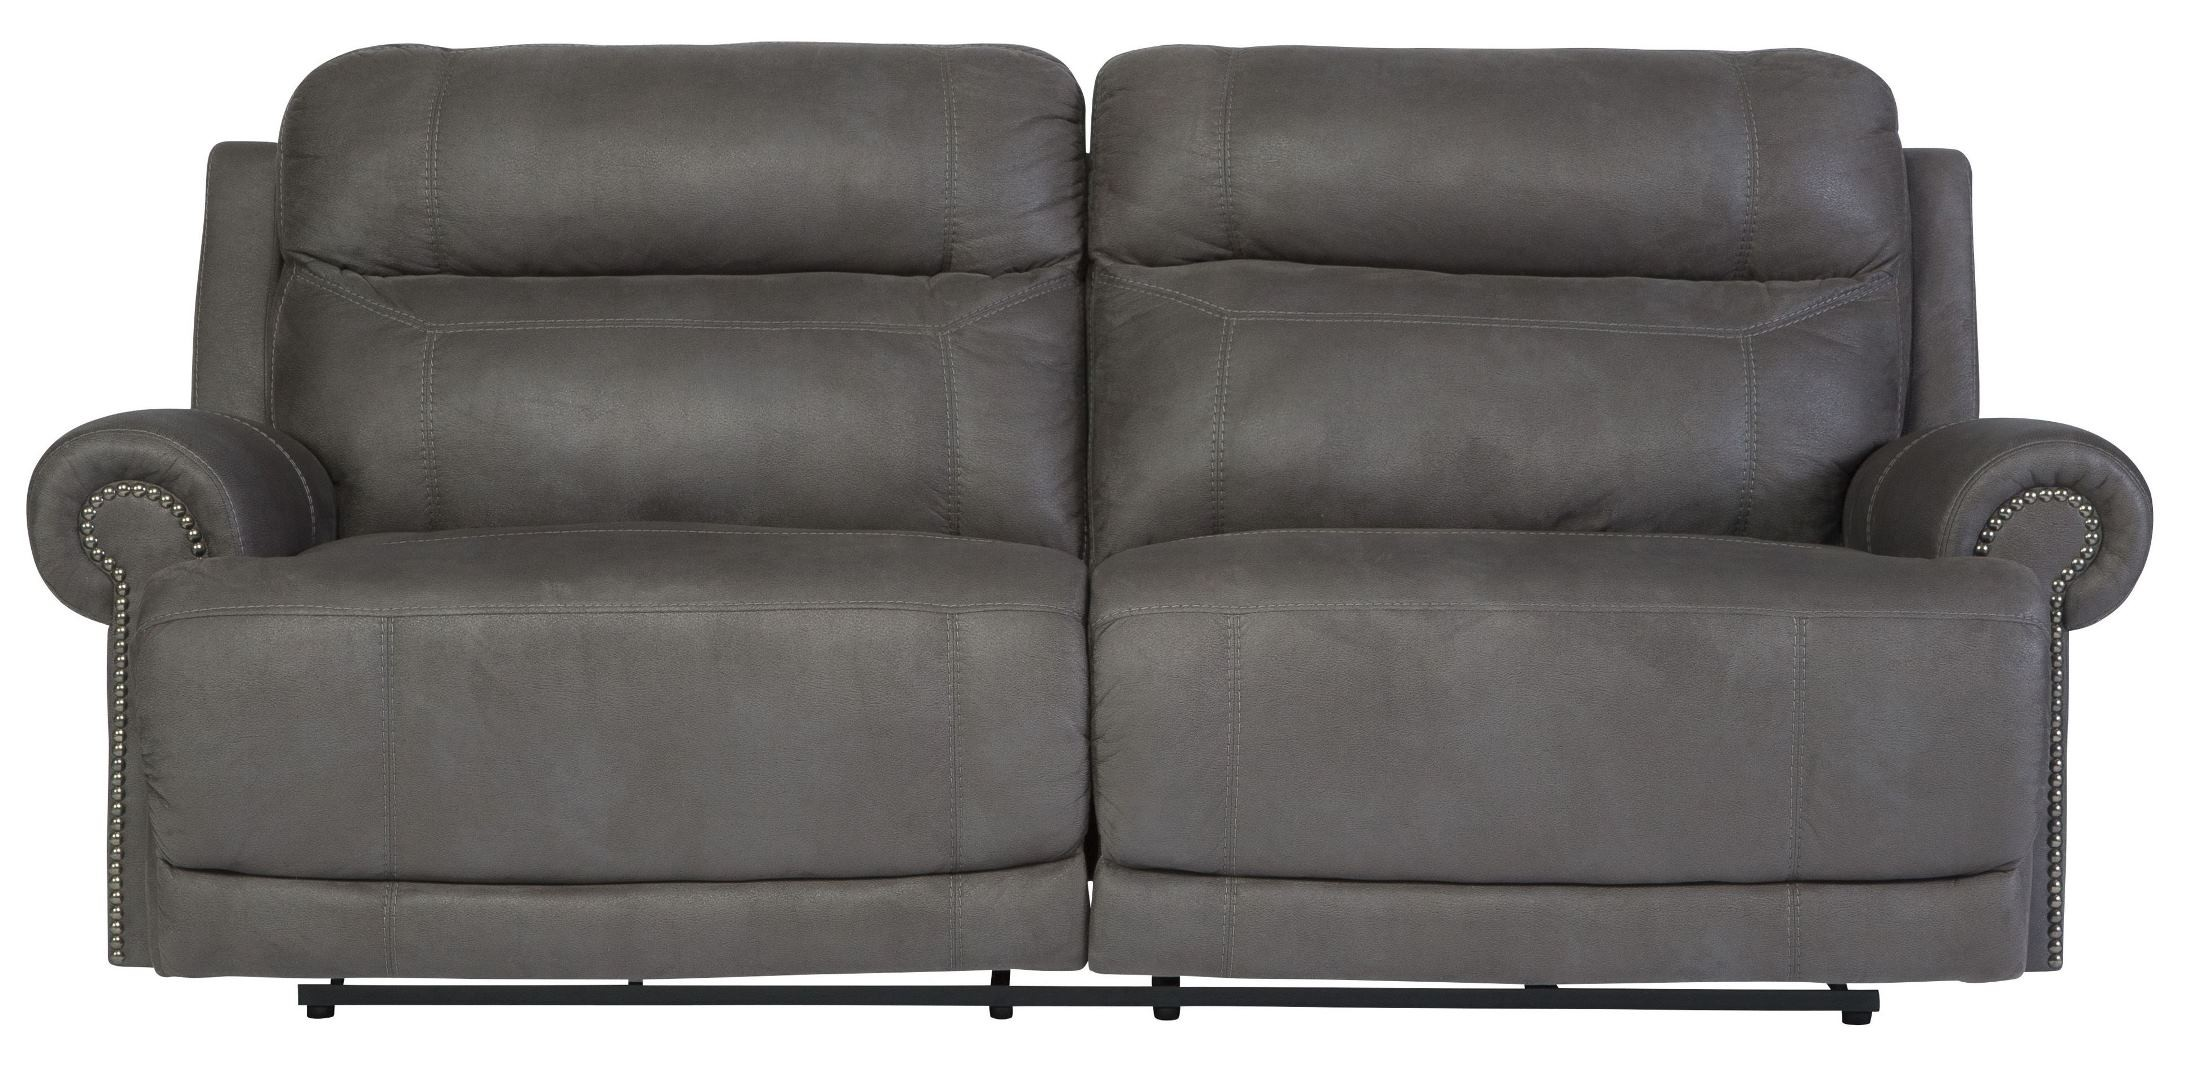 Home Sofa Set Price